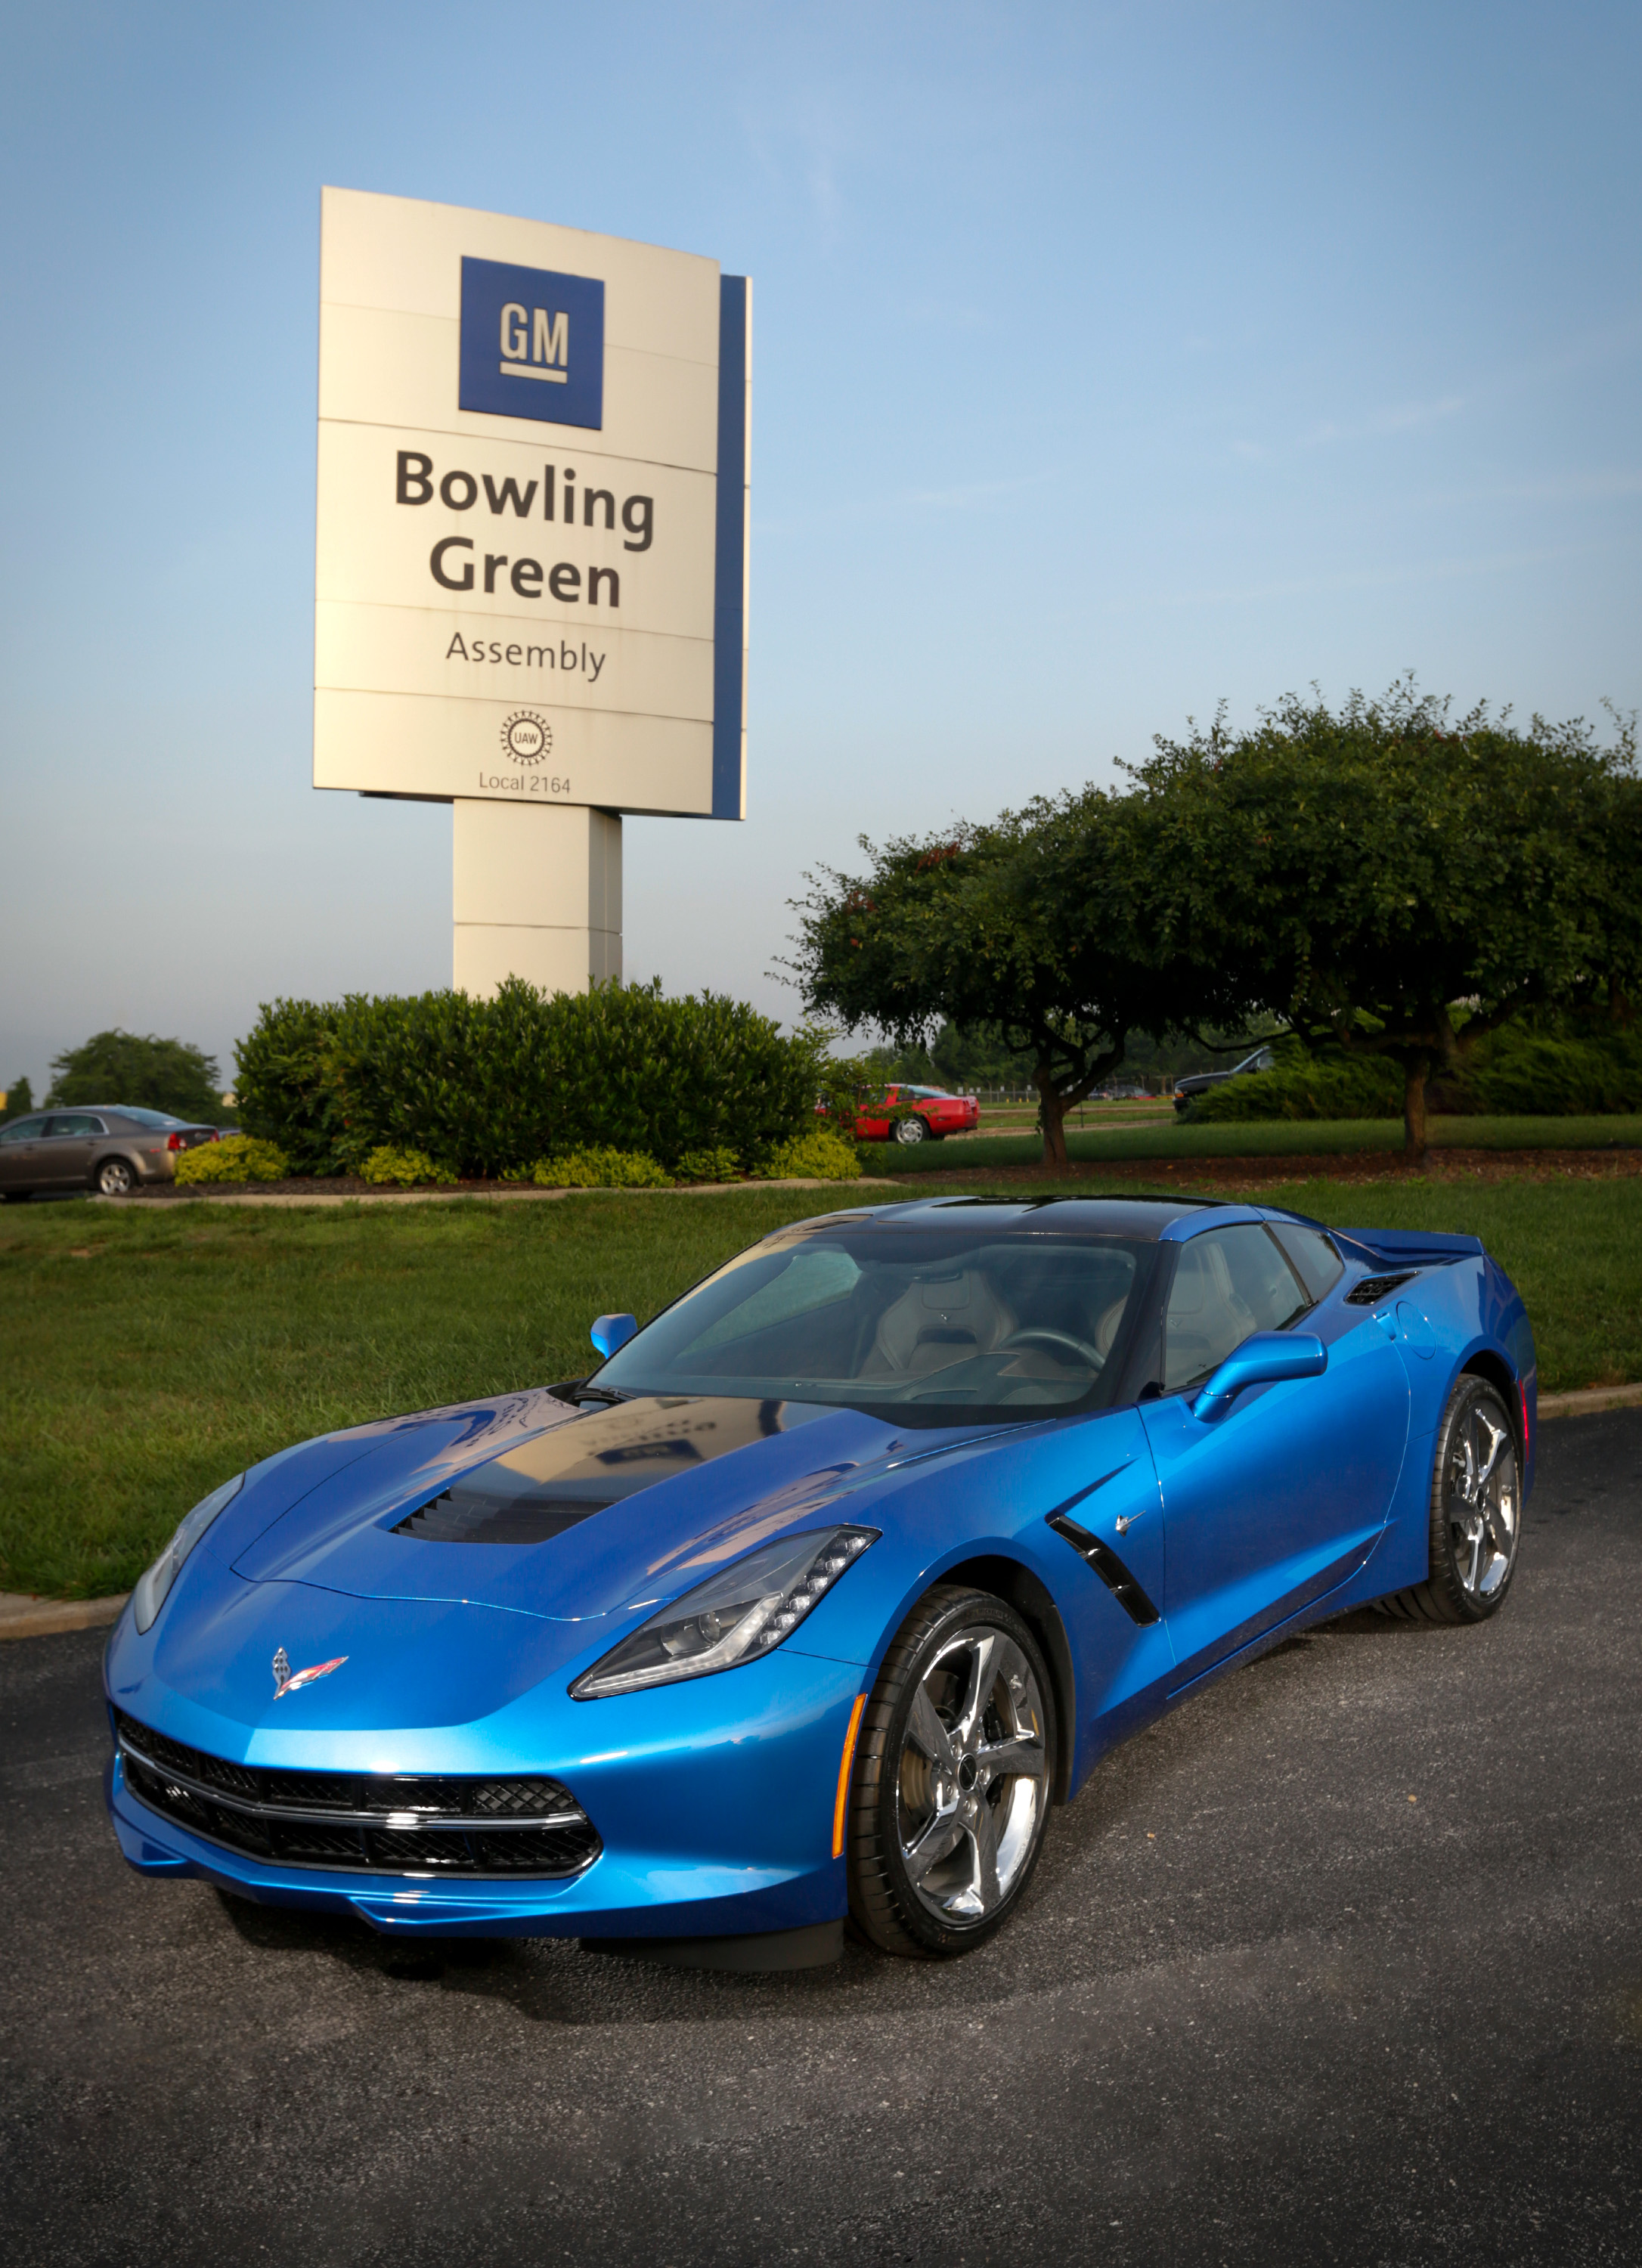 Bowling green assembly plant chevrolet corvette assembly about the plant